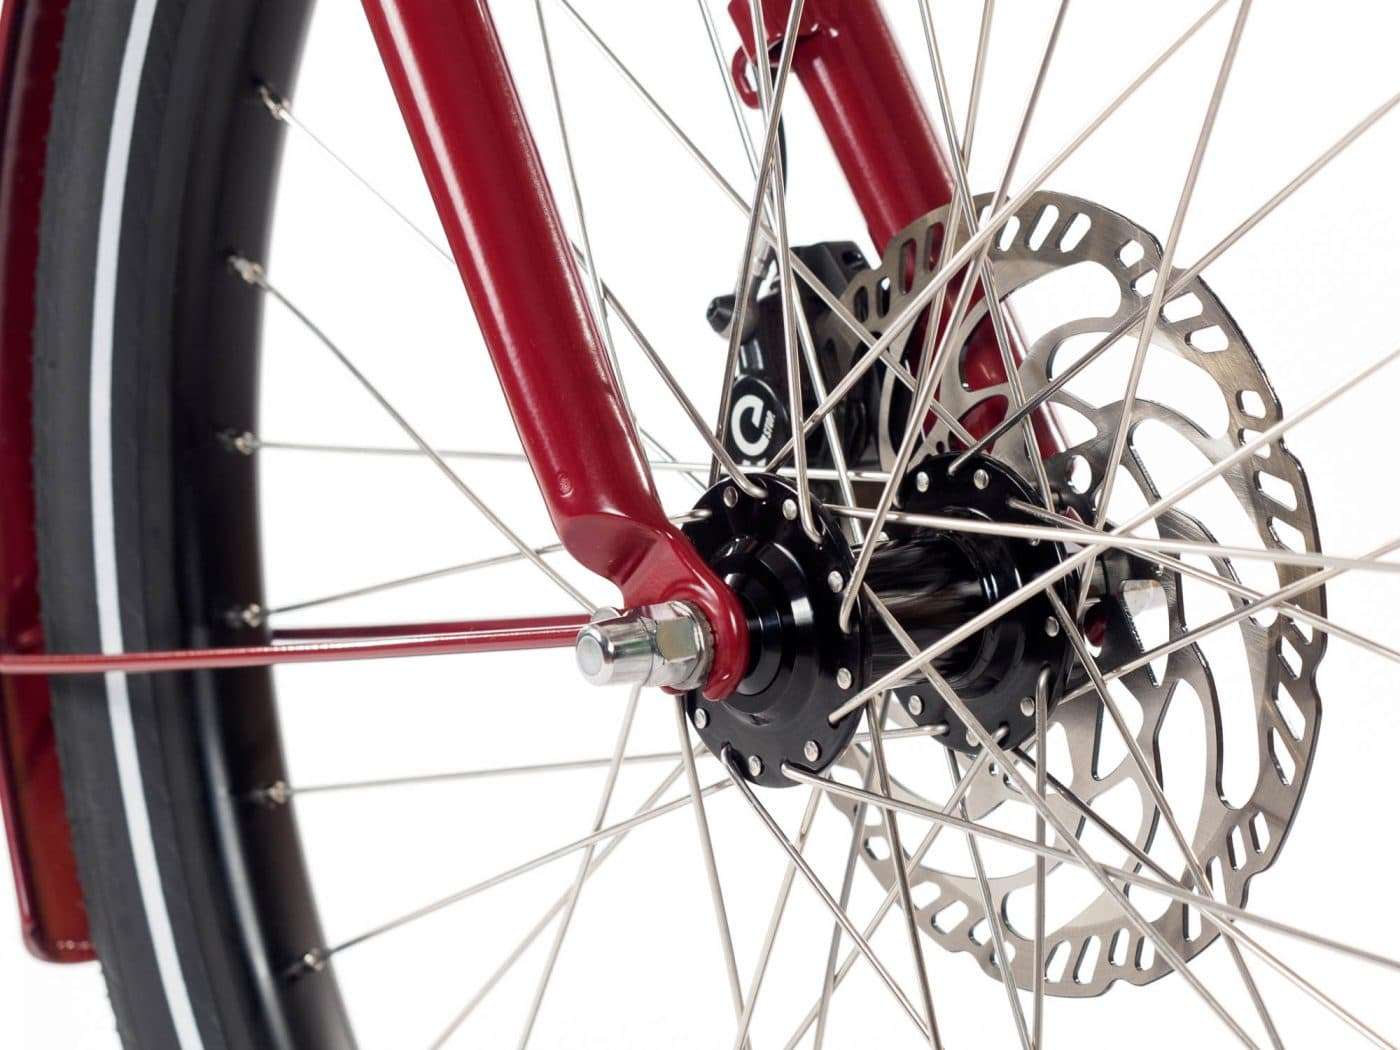 We use the MT5 hydraulic disc brakes by Magura, they are highly versatile and suited for level ground or hilly terrain.